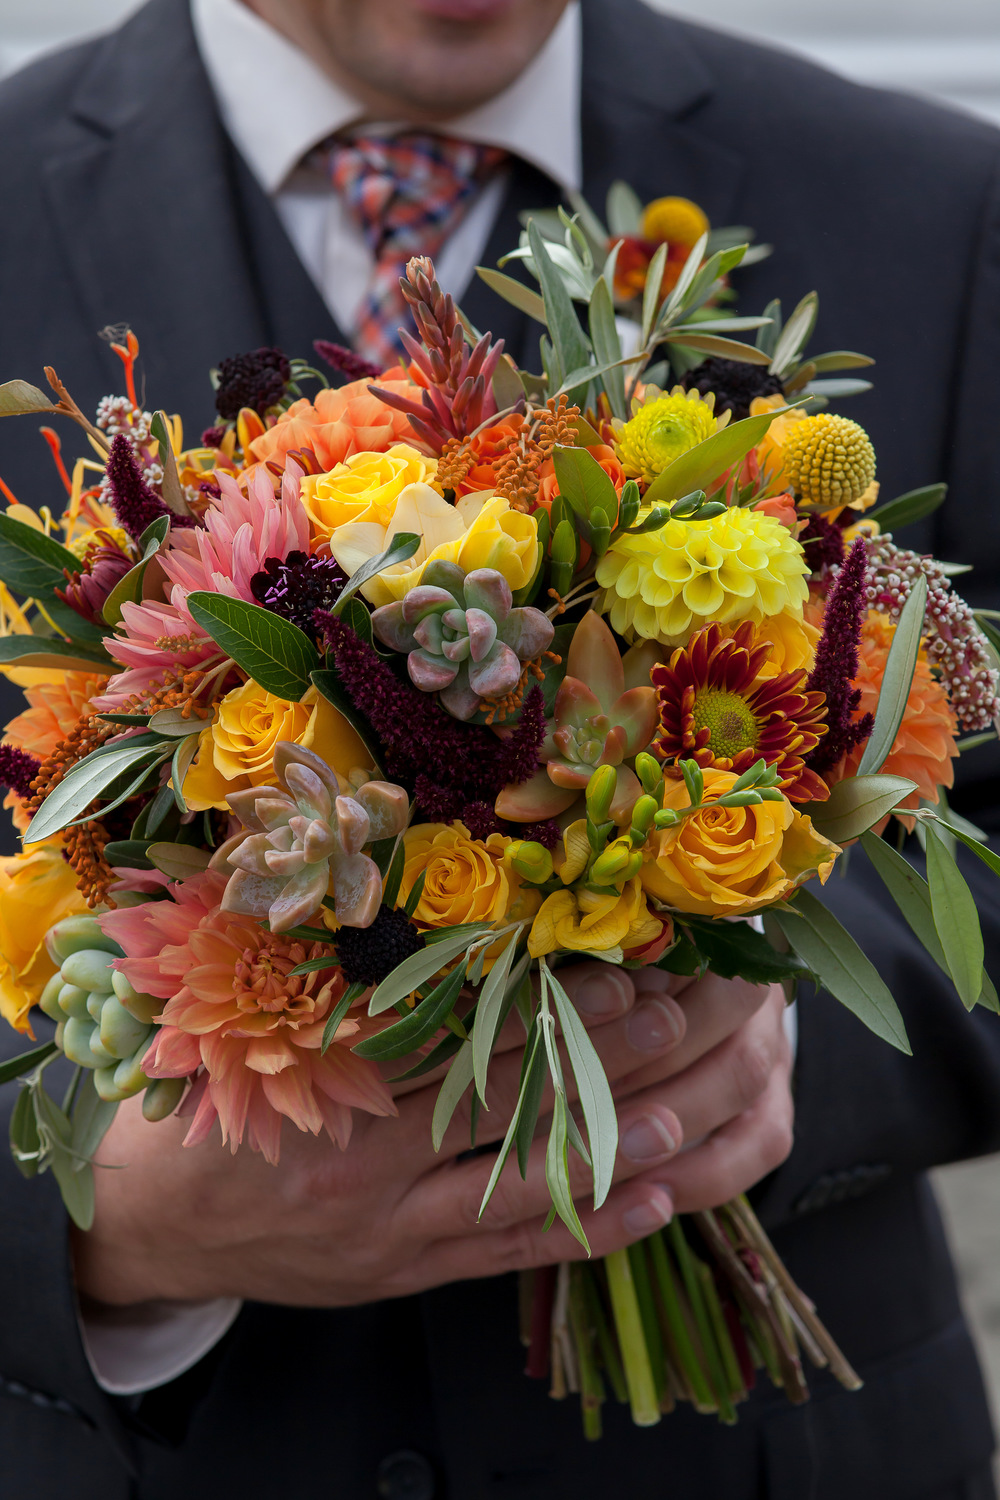 Molly's bouquet was an exuberant mix of dahlias, roses, mums, crasepdia, succulents, olive branches, ammaranth and ginger. Thank you to jjt Photography for sharing this lovely photo.